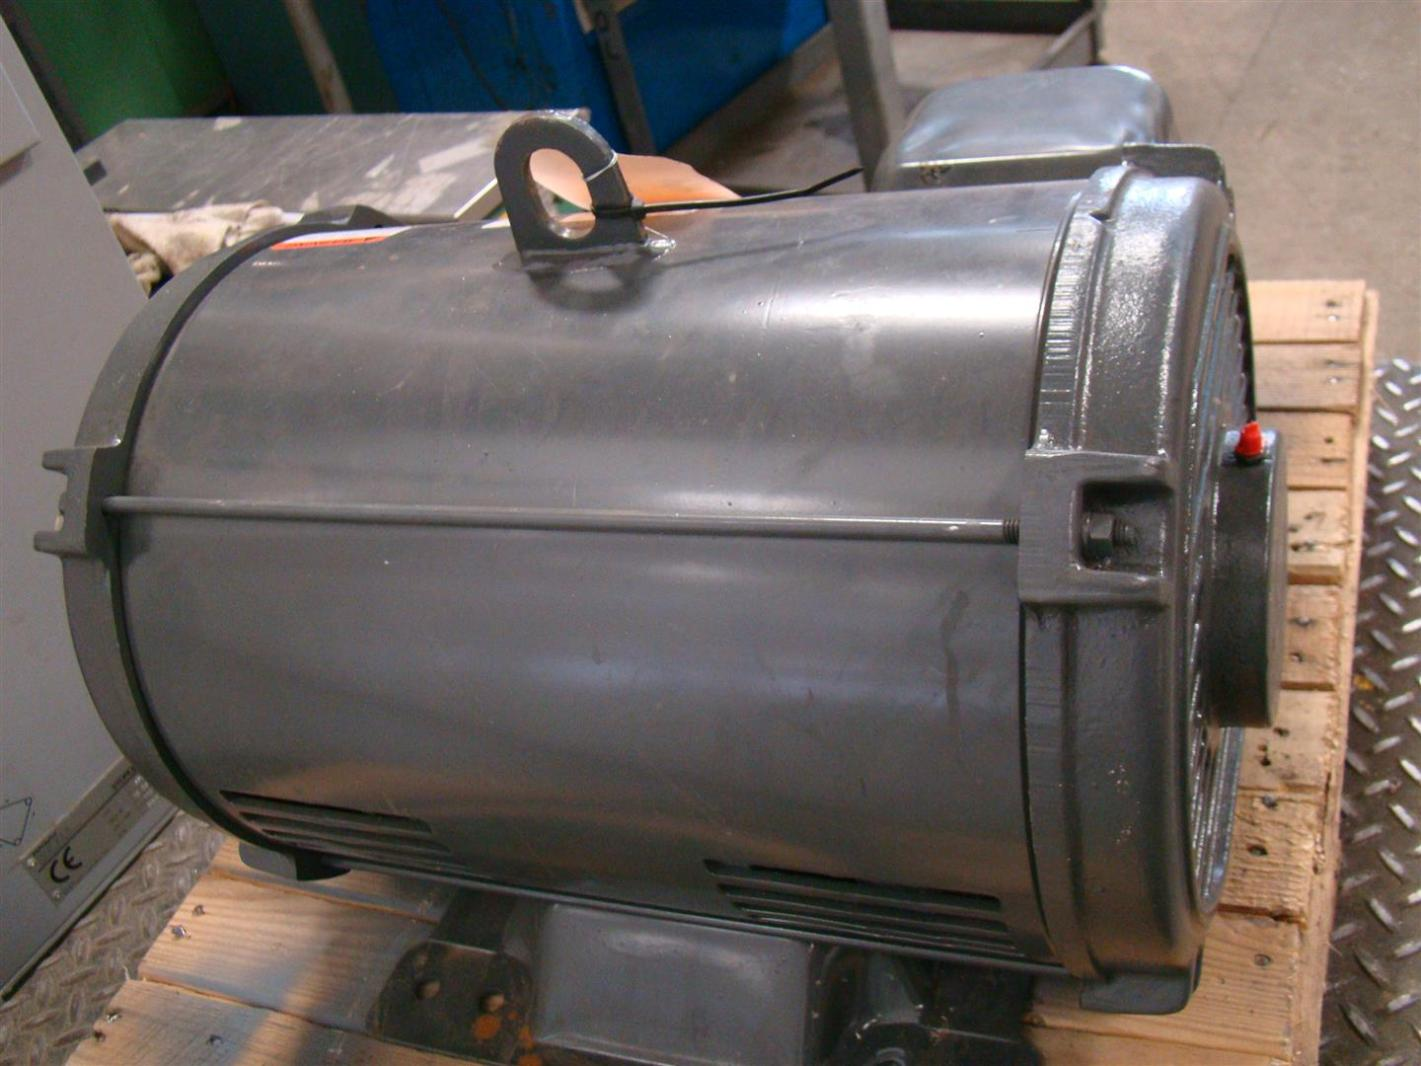 Us motors emerson 25hp 230 460v ph3 d25p2b j364 ebay for Emerson electric motor model numbers